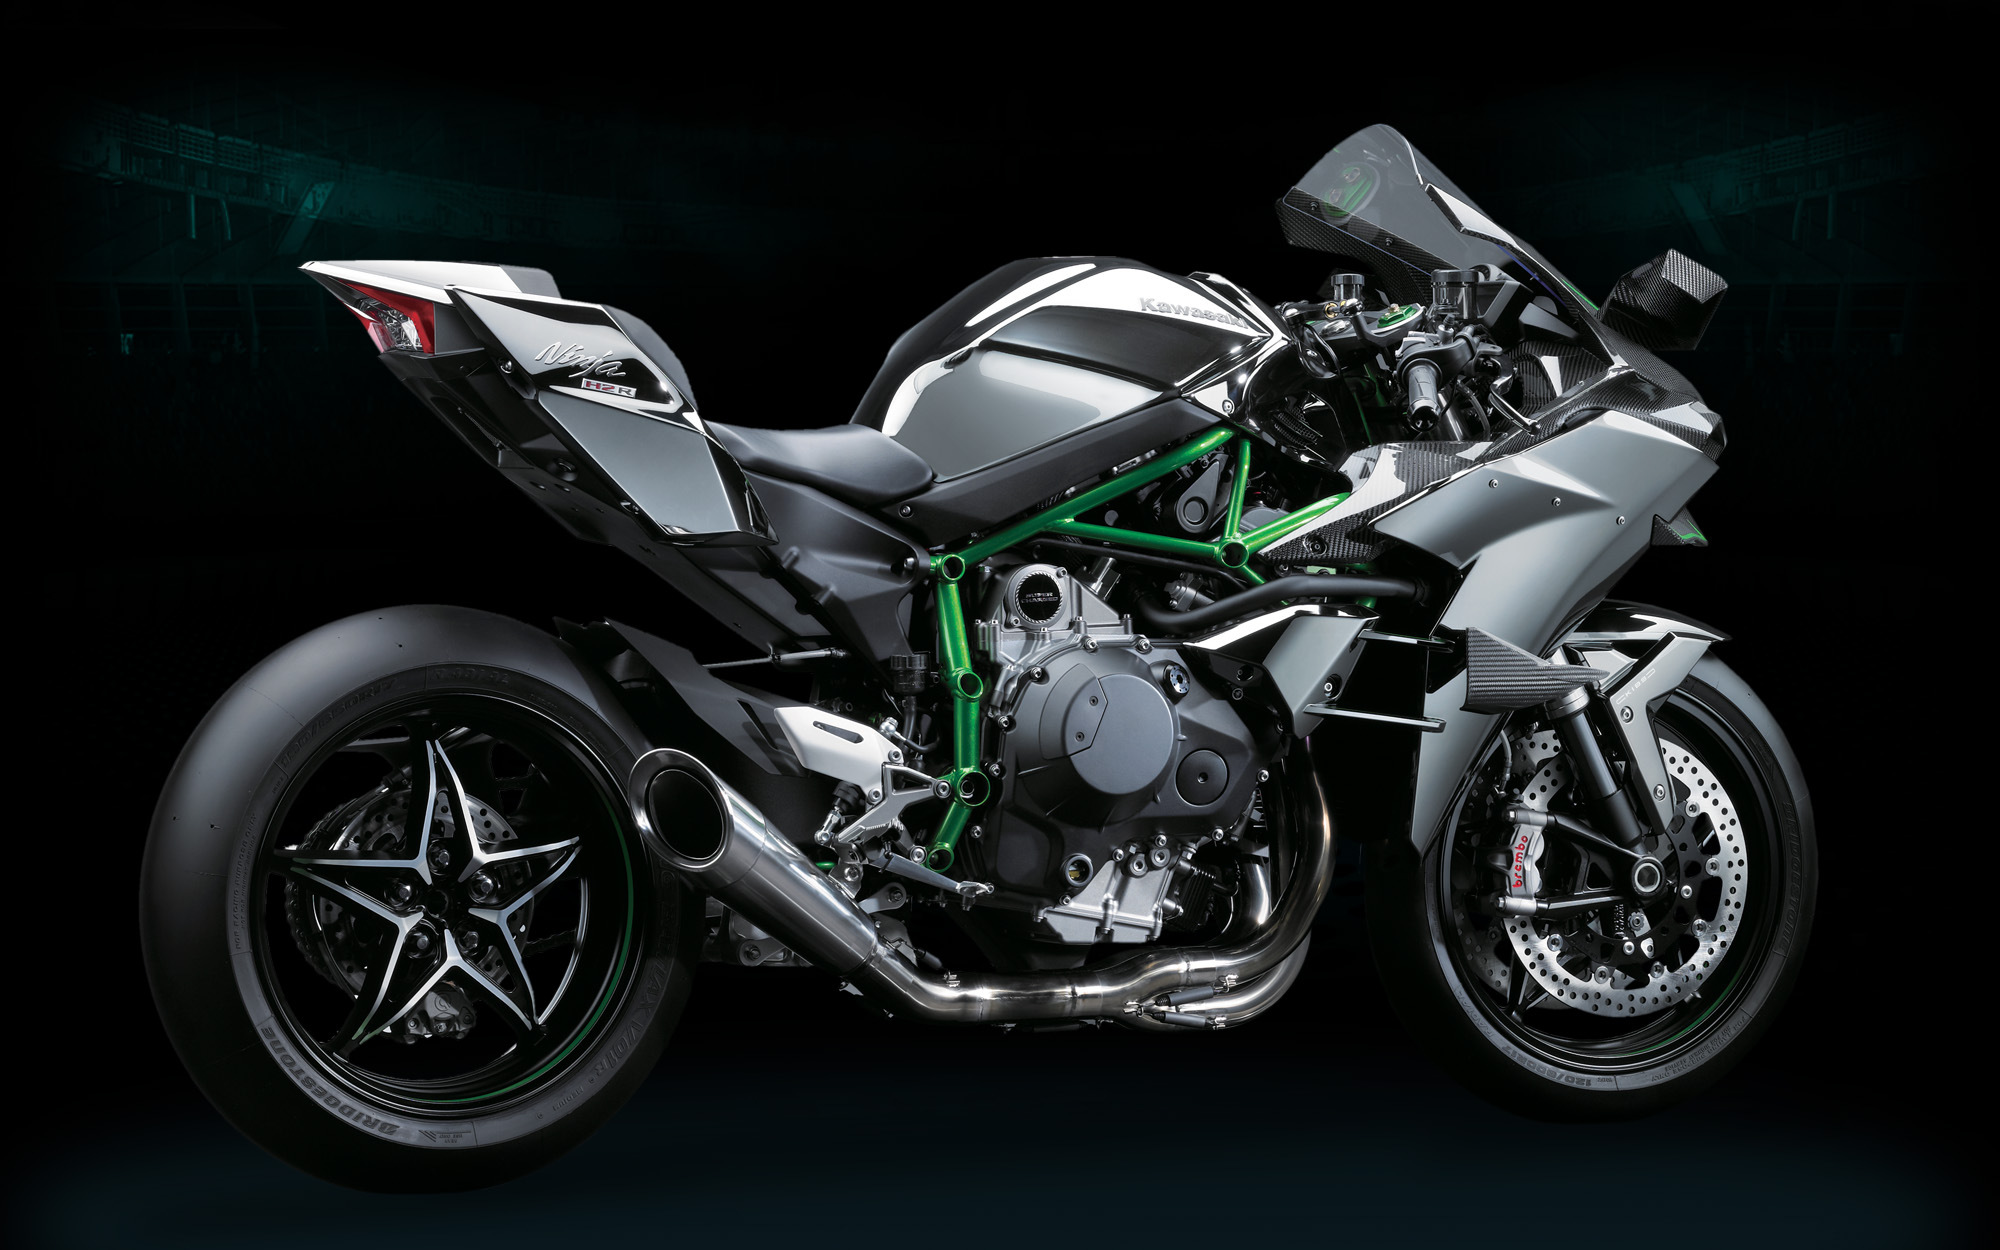 Ninja H2 - BUILT BEYOND BELIEF